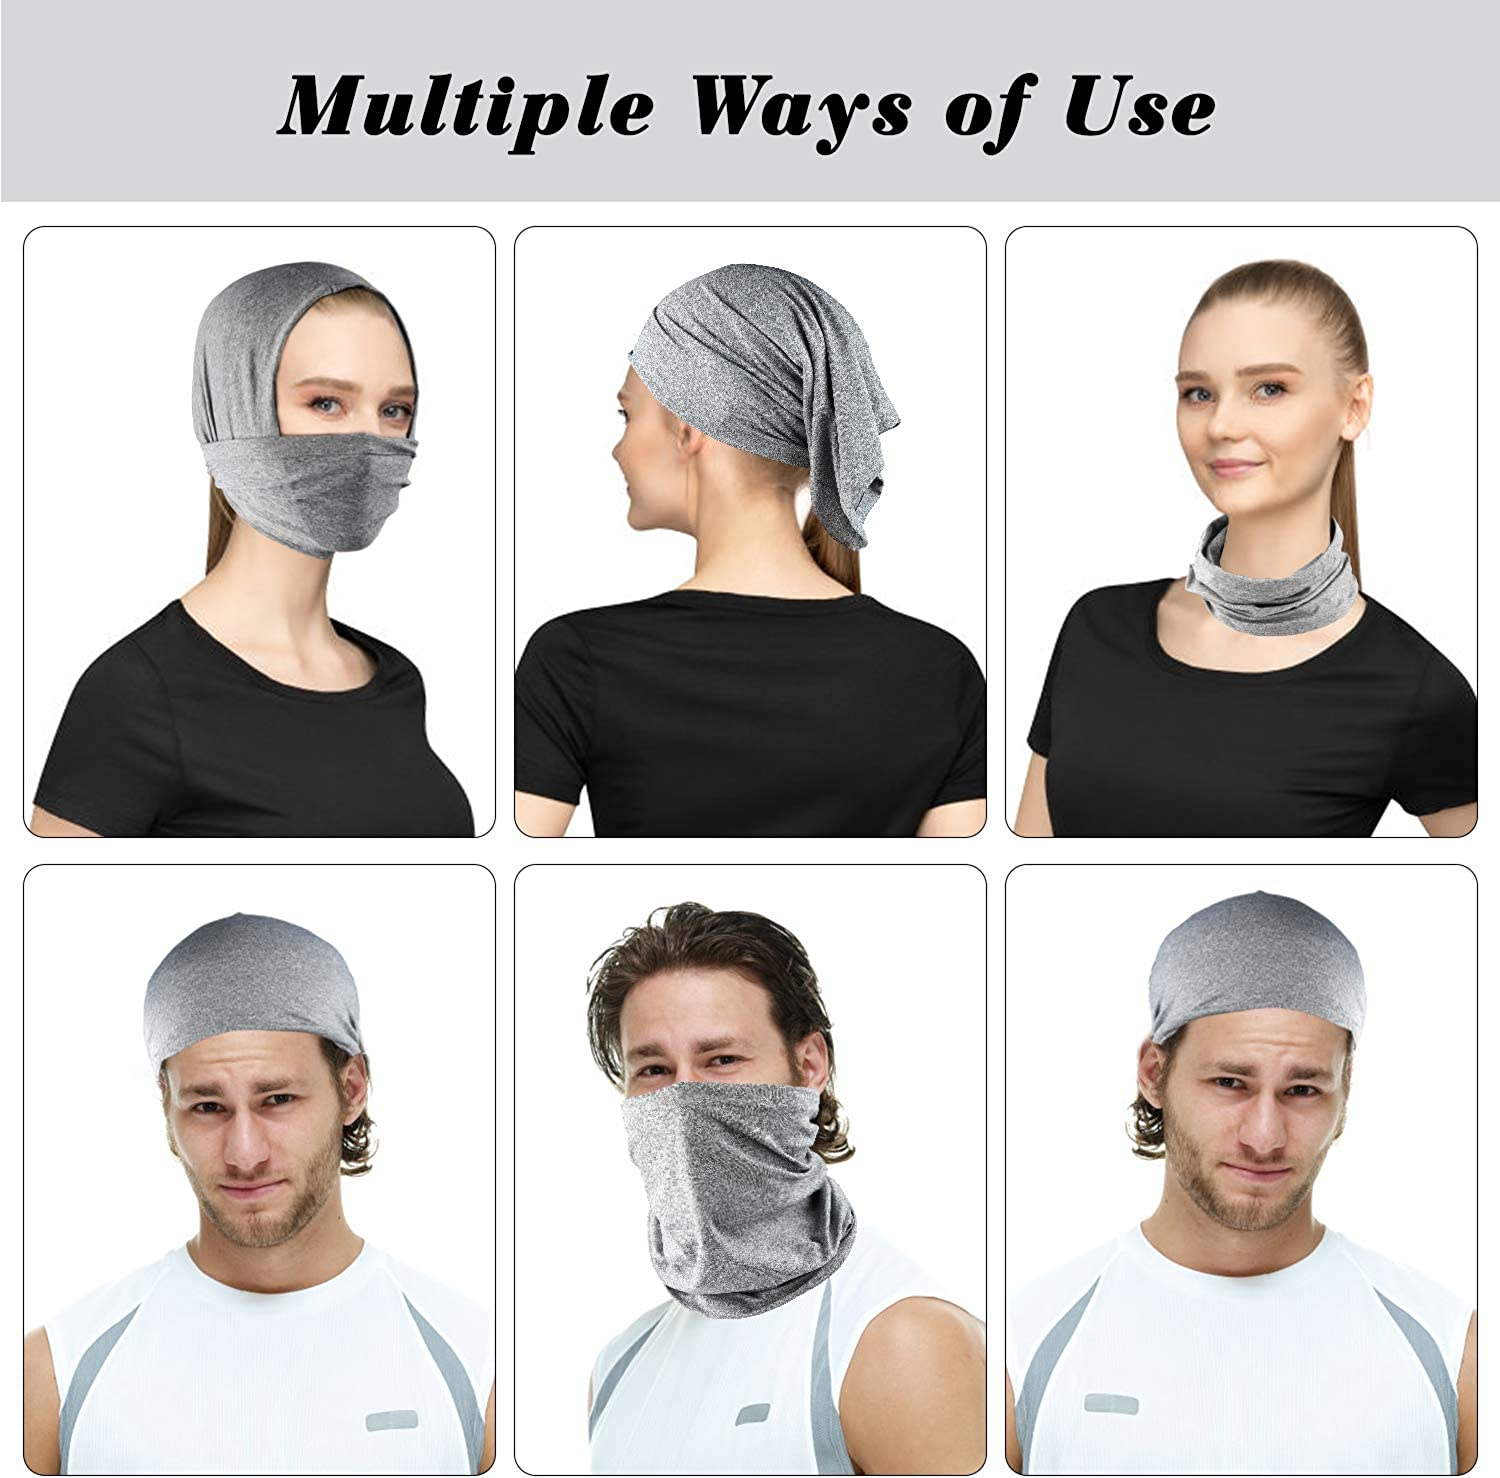 Seamless Neck Gaiter Bandanas Scarf with Safety Carbon Filters Sport Outdoor Protective Equipment 13 Pack Both Men and Women Kids